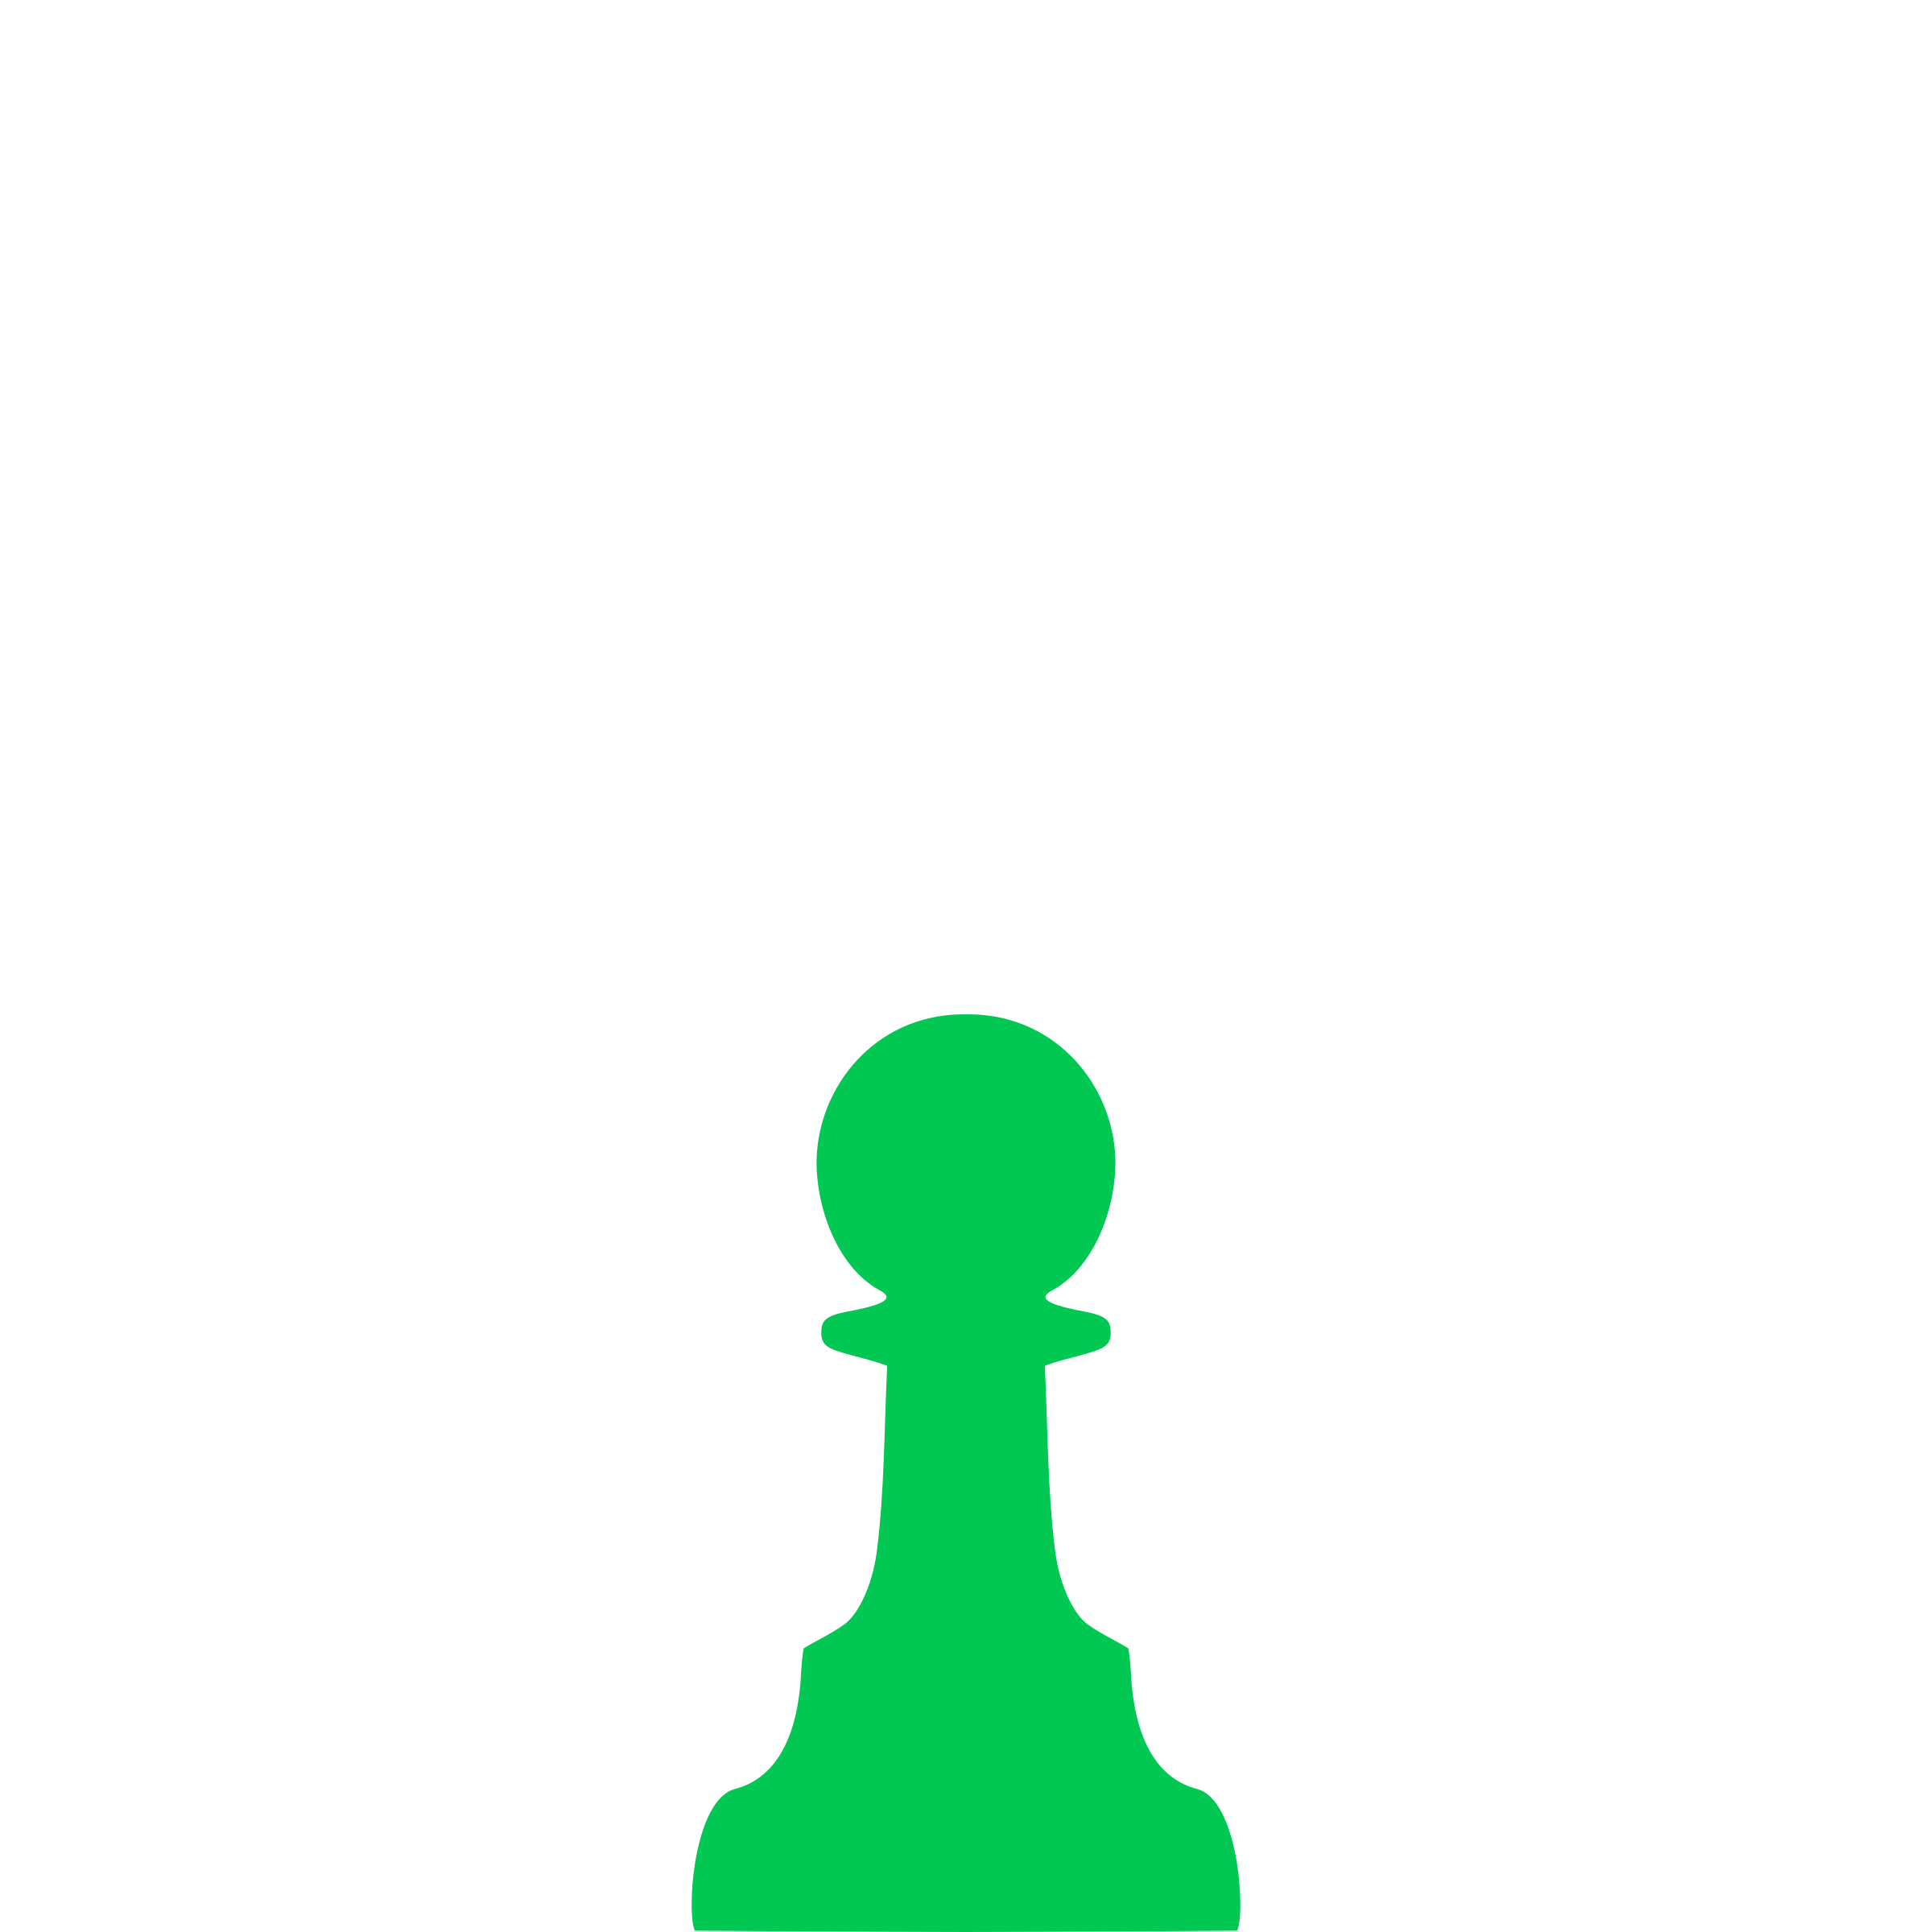 Silhouette Staunton Chess Piece – Pawn / Peón by DG-RA